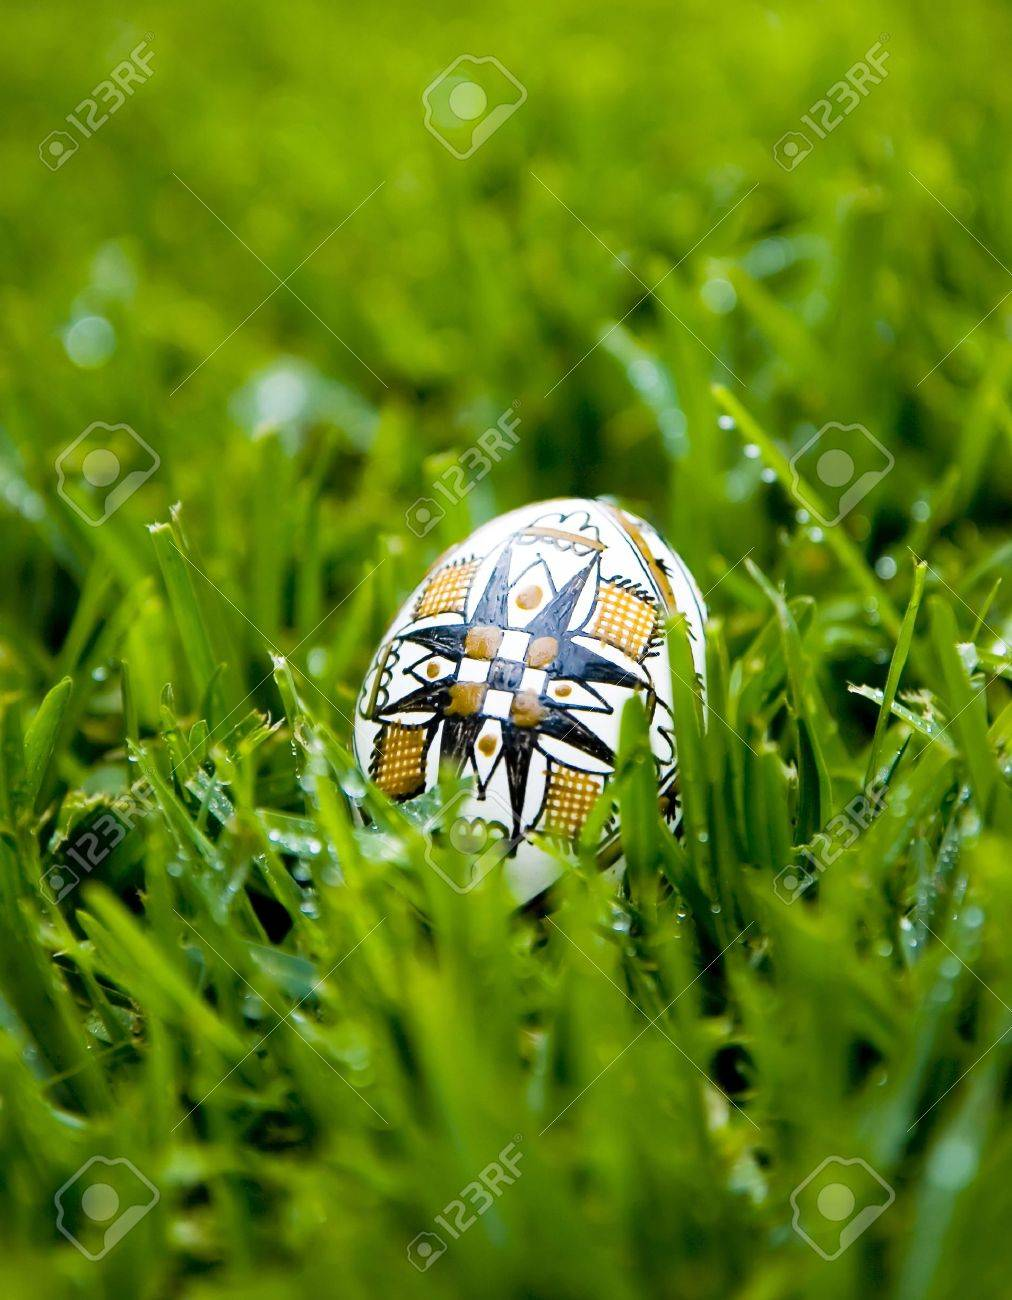 Traditional Easter Egg Painted With The Symbol Of Cross On Bright Green Grass